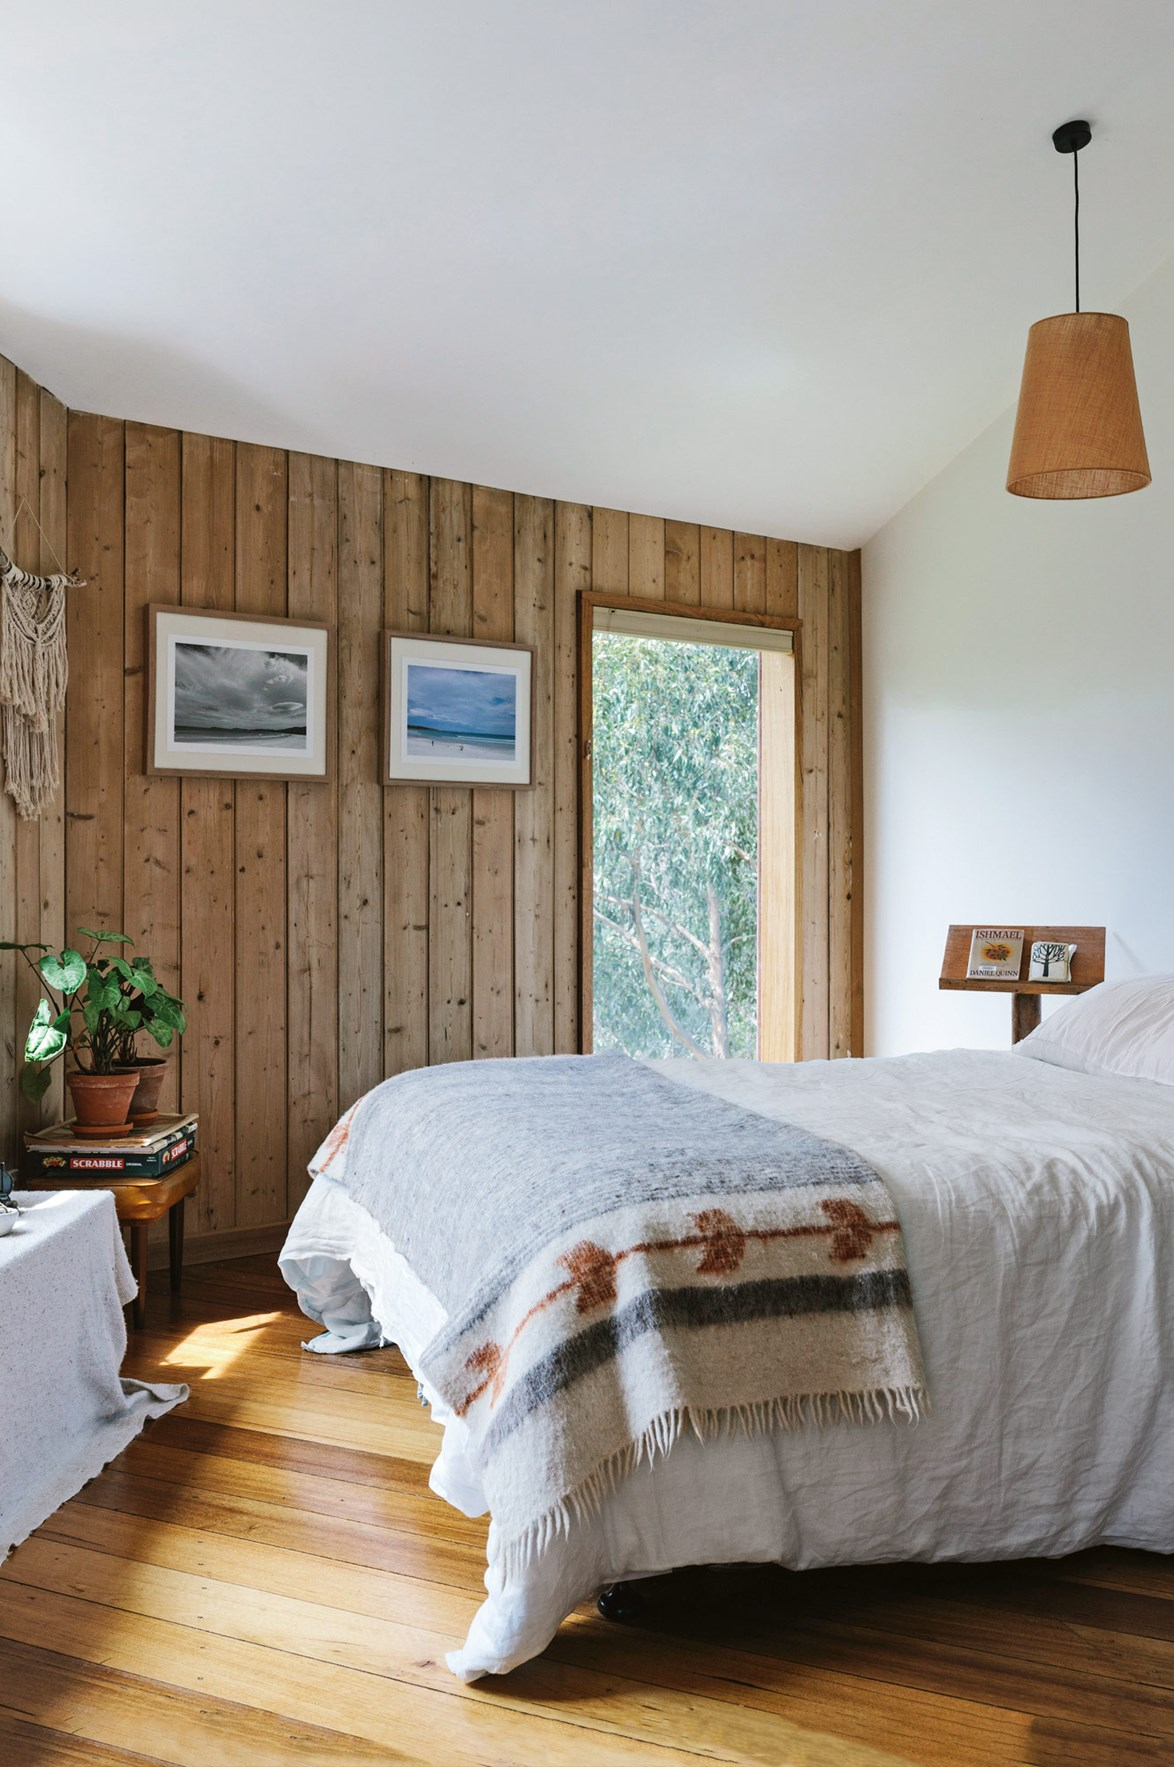 Natural light, timber wall panelling and a cosy throw brought back from Guatemala, make this simple bedroom feel warm and cosy.